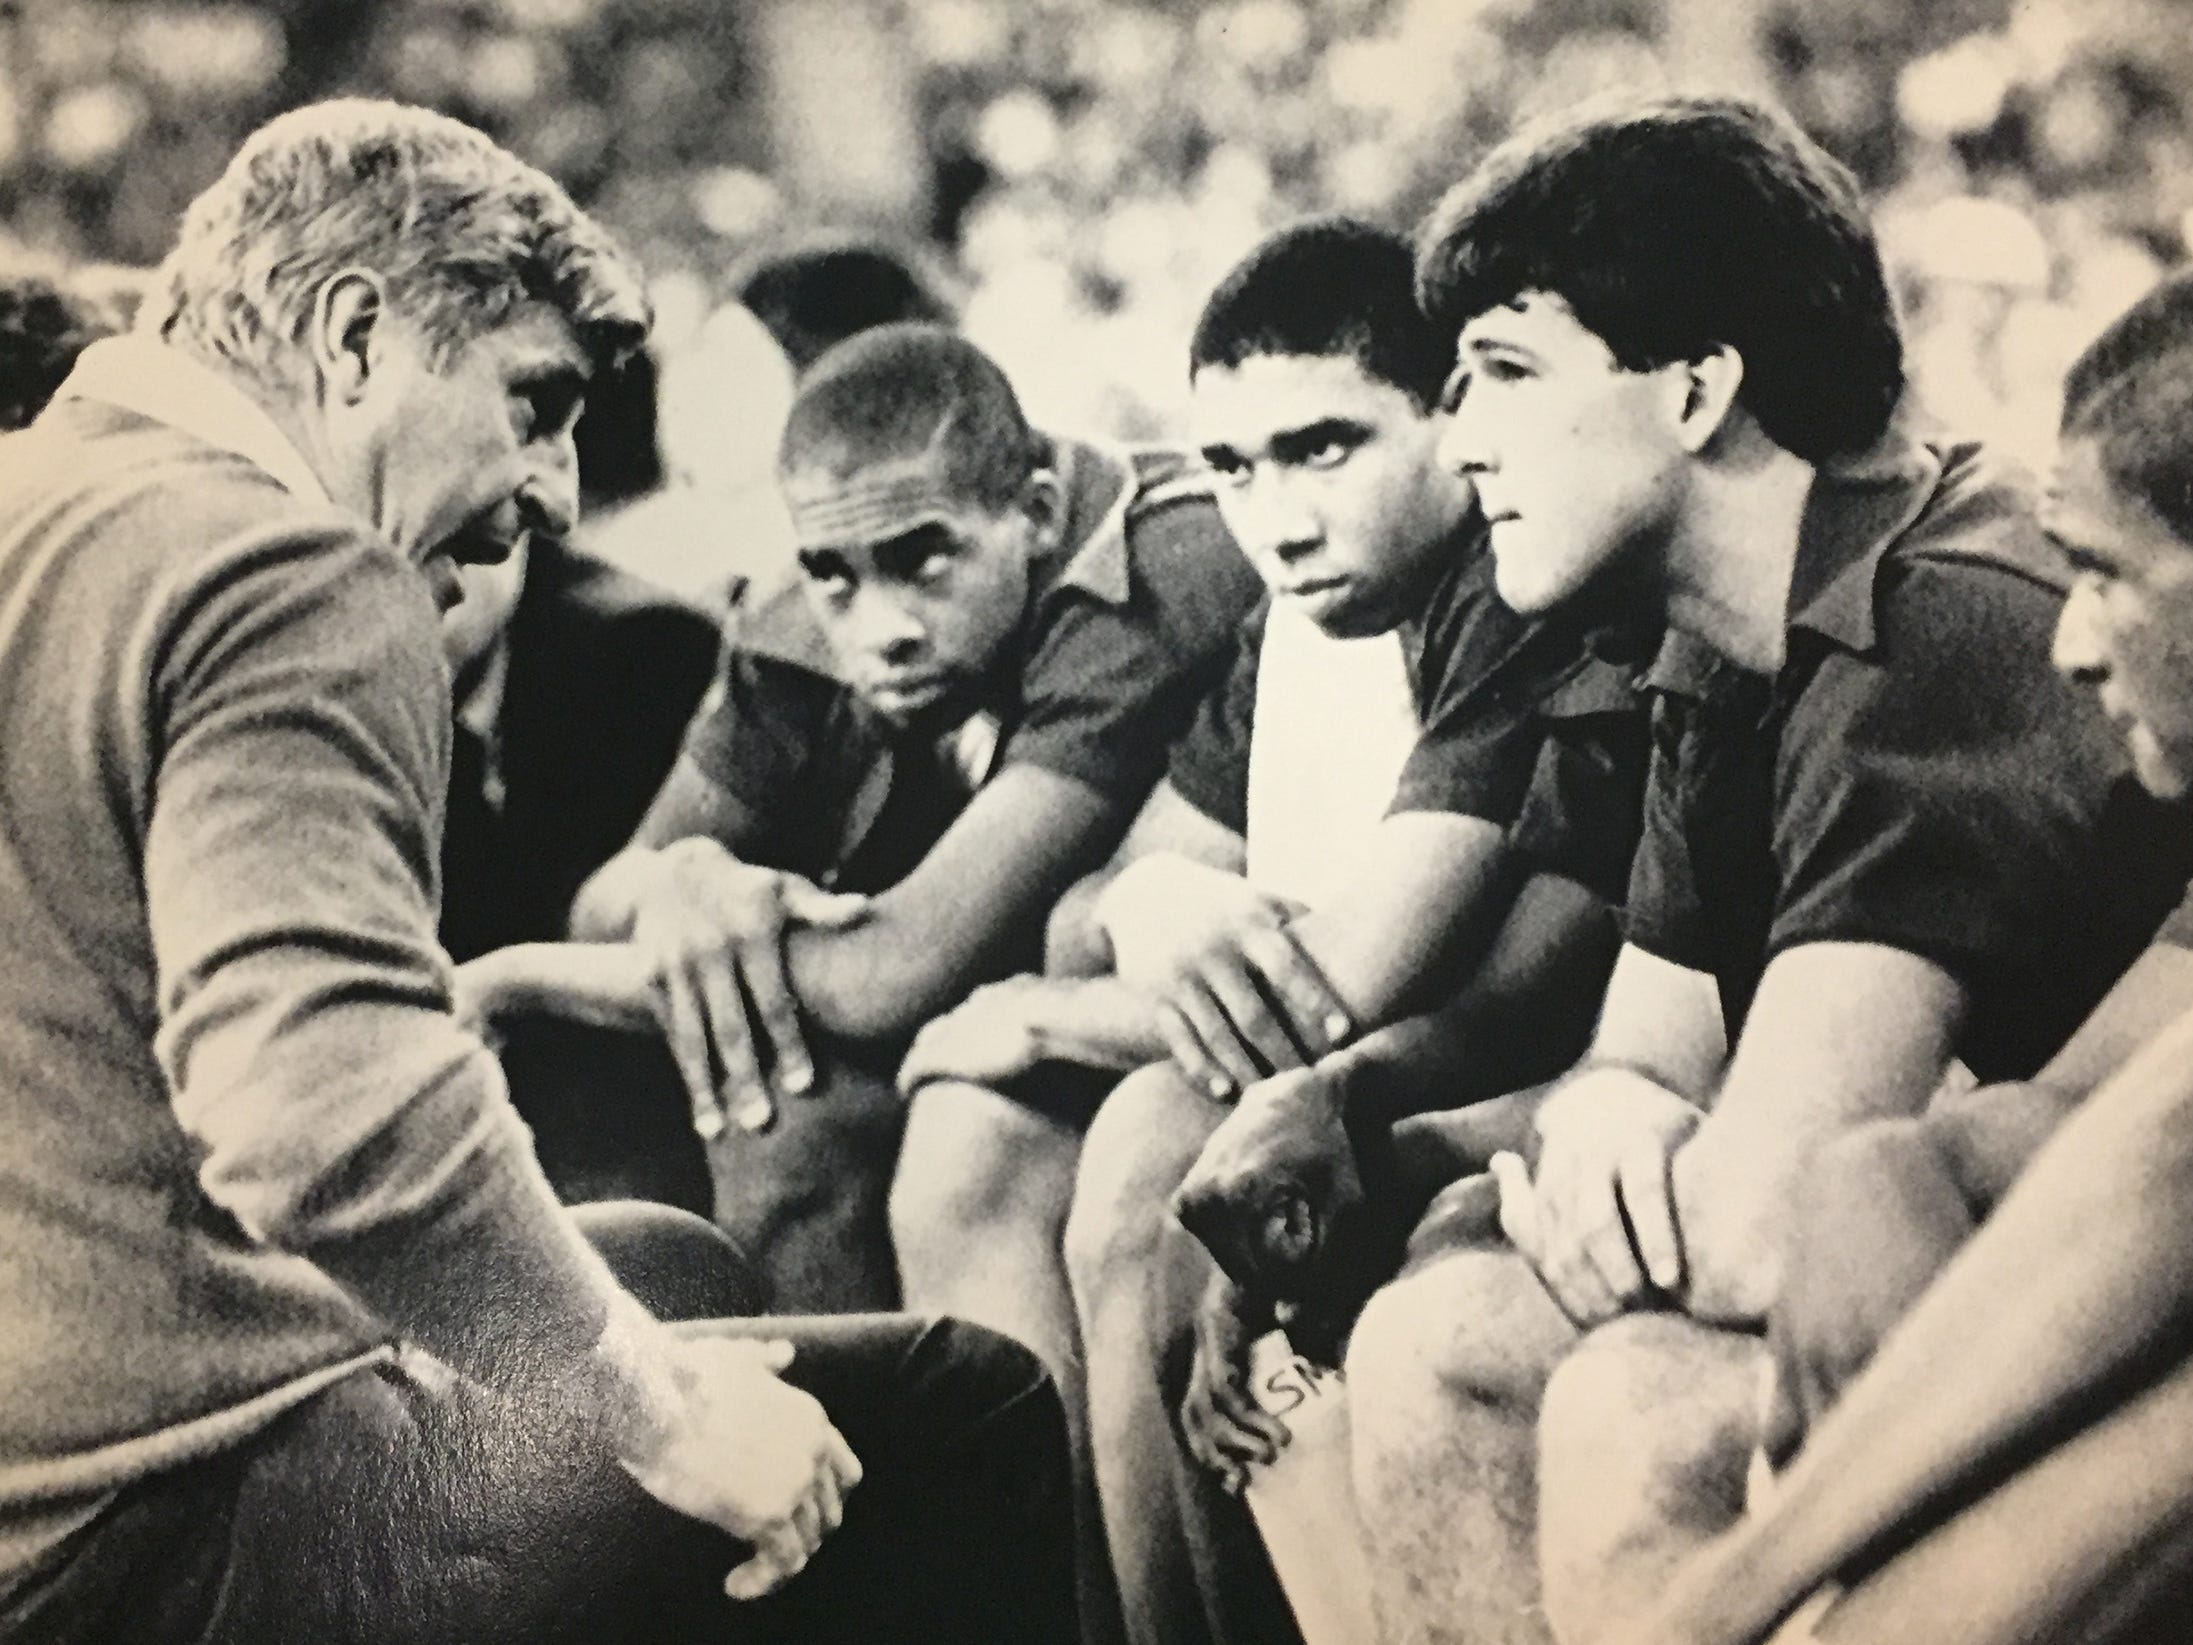 Bob Knight, left, talks with players during a timeout in the IU-Fairfield game in the first round of the 1987 NCAA tournament.